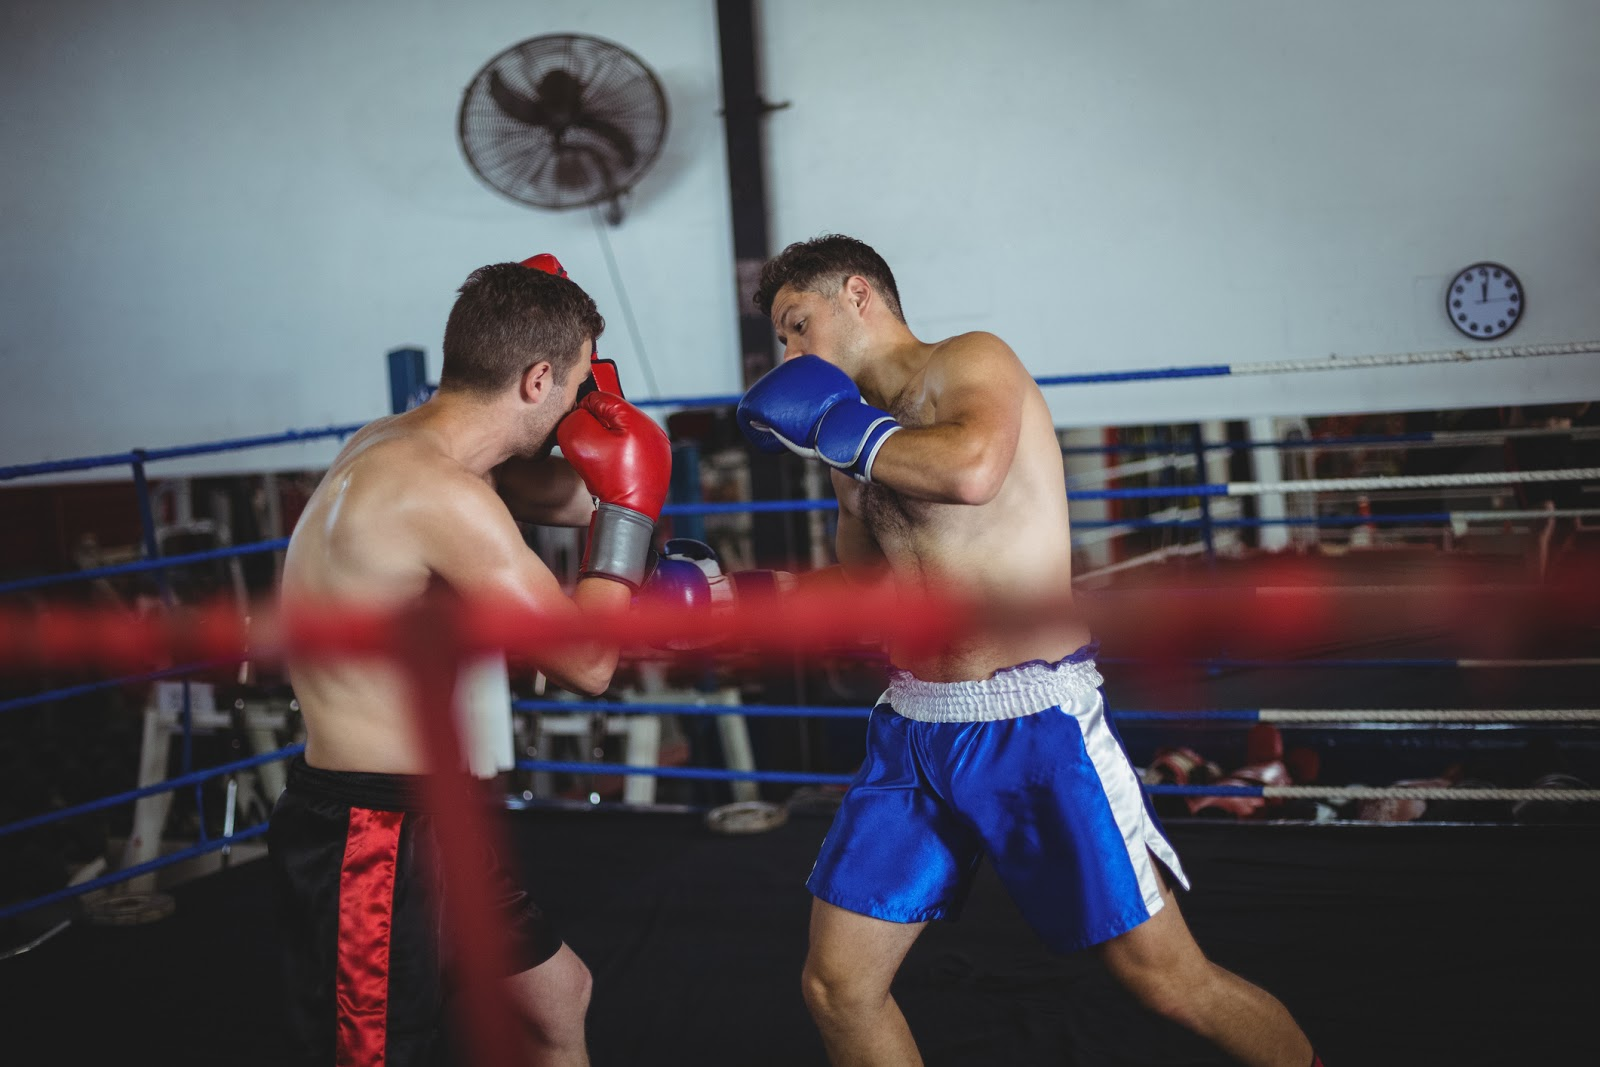 Two male fighters in action sparring in the ring with boxer in blue doing a body shot.